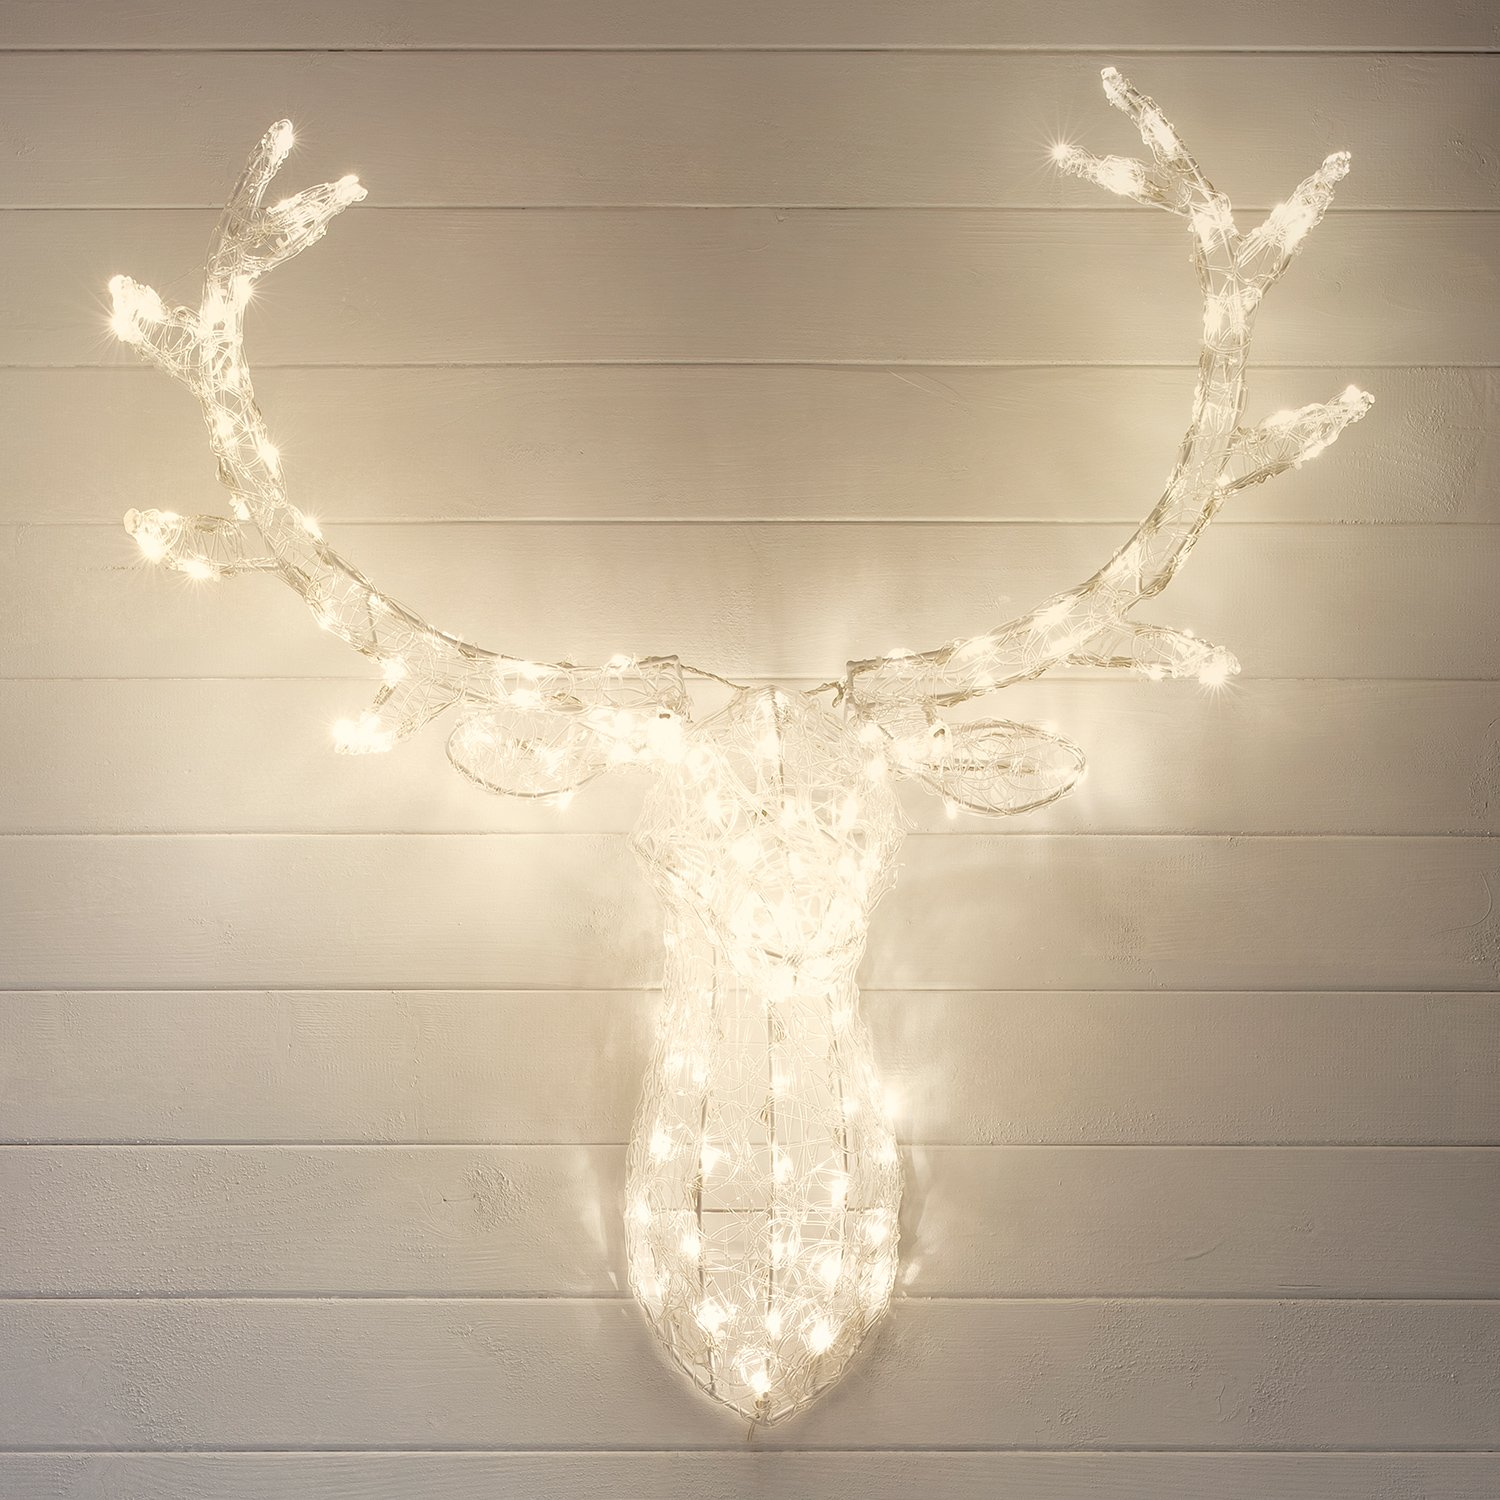 Stag head christmas light with 140 warm white leds for indoor stag head christmas light with 140 warm white leds for indoor outdoor use by lights4fun amazon kitchen home mozeypictures Gallery